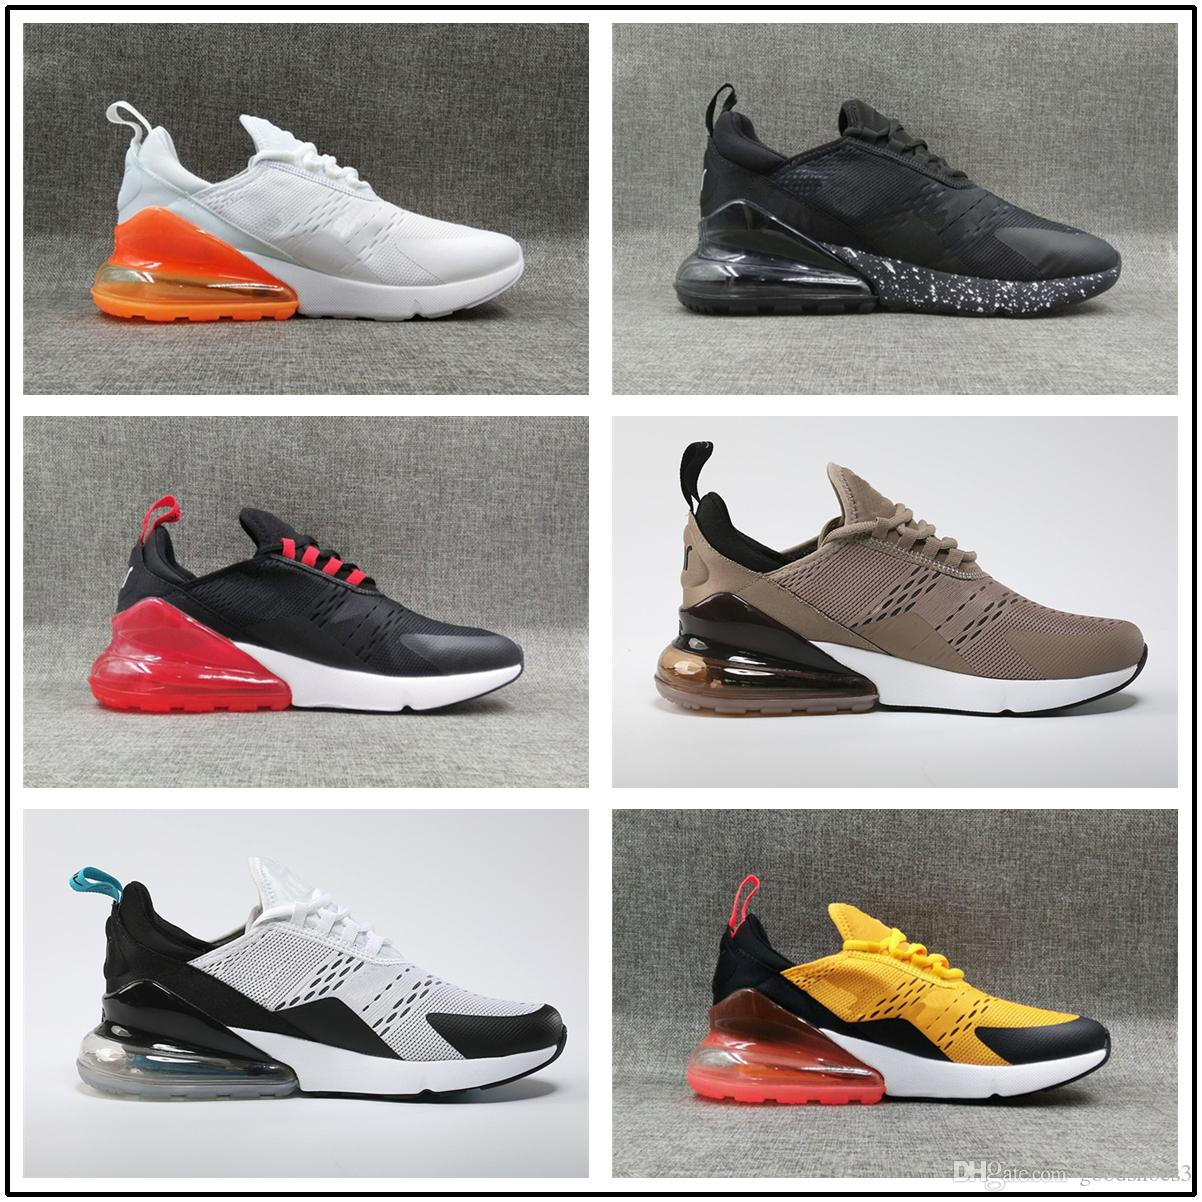 hot sale online 35eea b2b51 Acquista Max Air 270 Airmax270 Shoes Nike 2702018 Flagship Sneakers 27c  Sneakers Uomo Casual Scarpe Uomo 270 Triple Black Sport Stivali Donna Sport  Scarpe ...